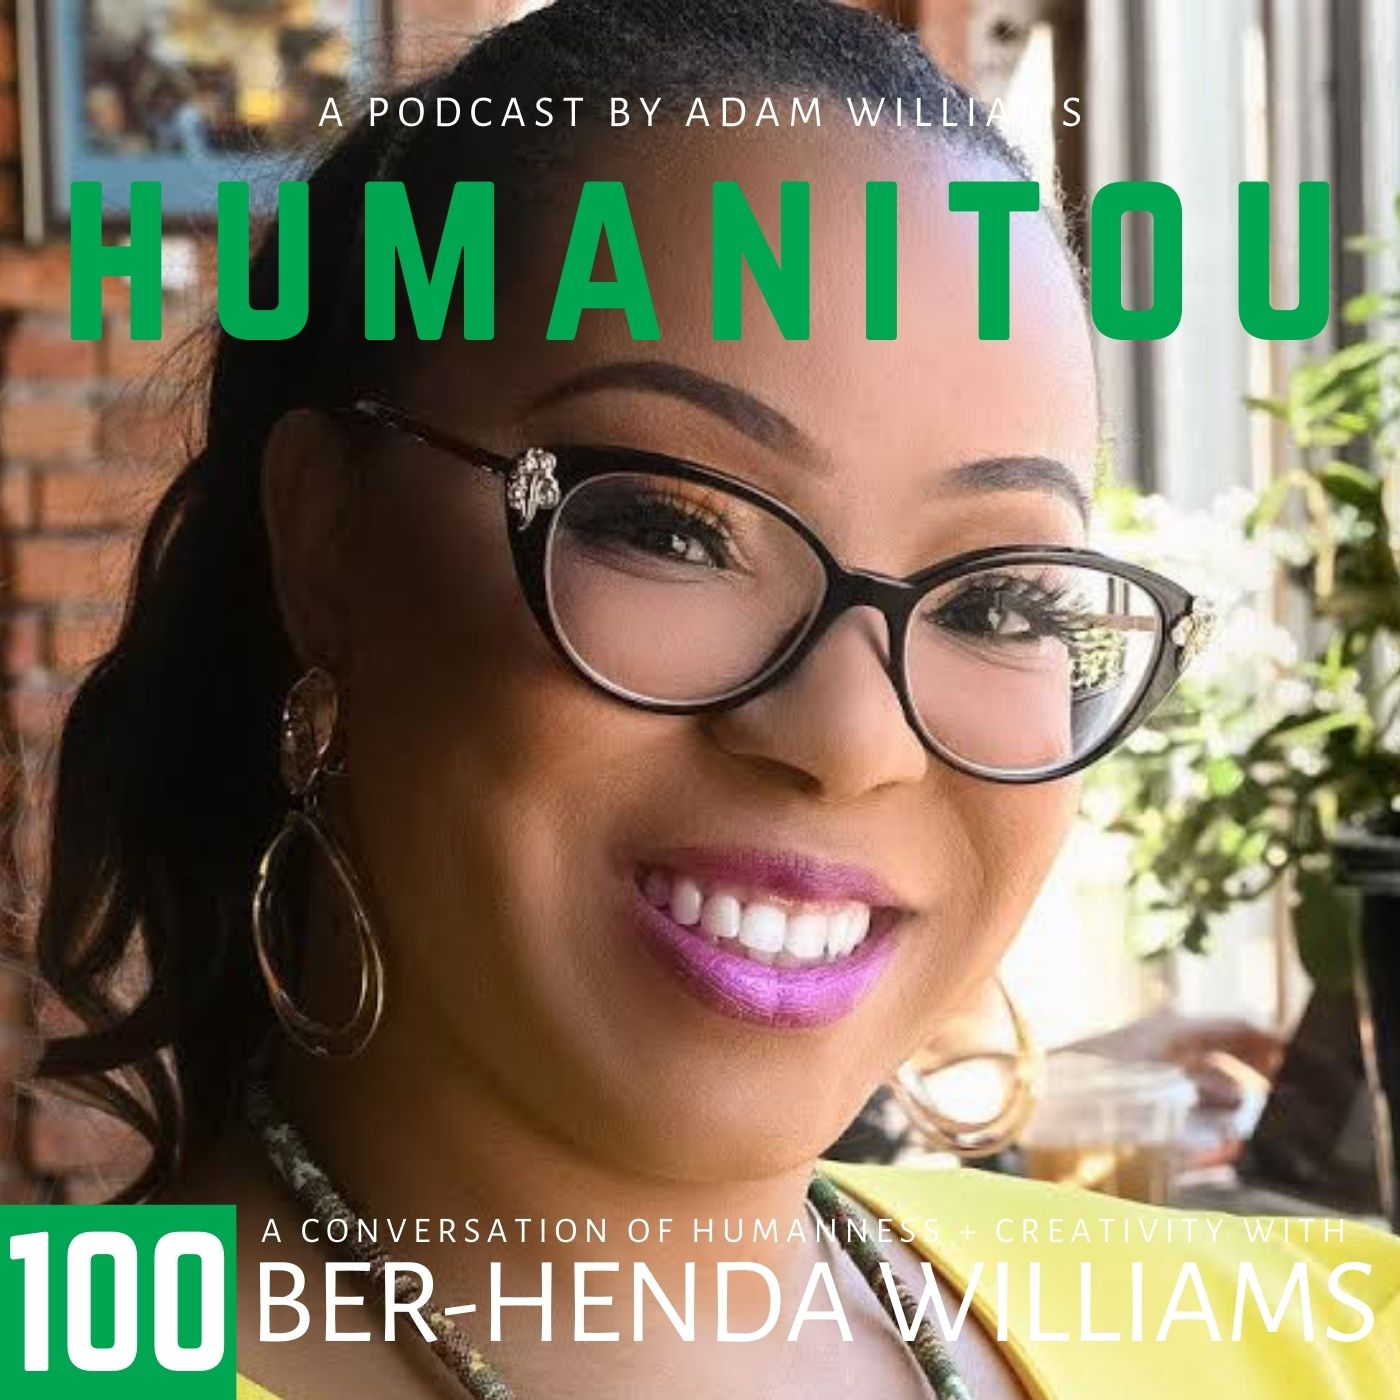 100: Ber-Henda Williams, empathic coach and bilingual poet, on empathy, systemic racism, cultural behaviors, collective grief, curiosity and reaffirming connections of humanity